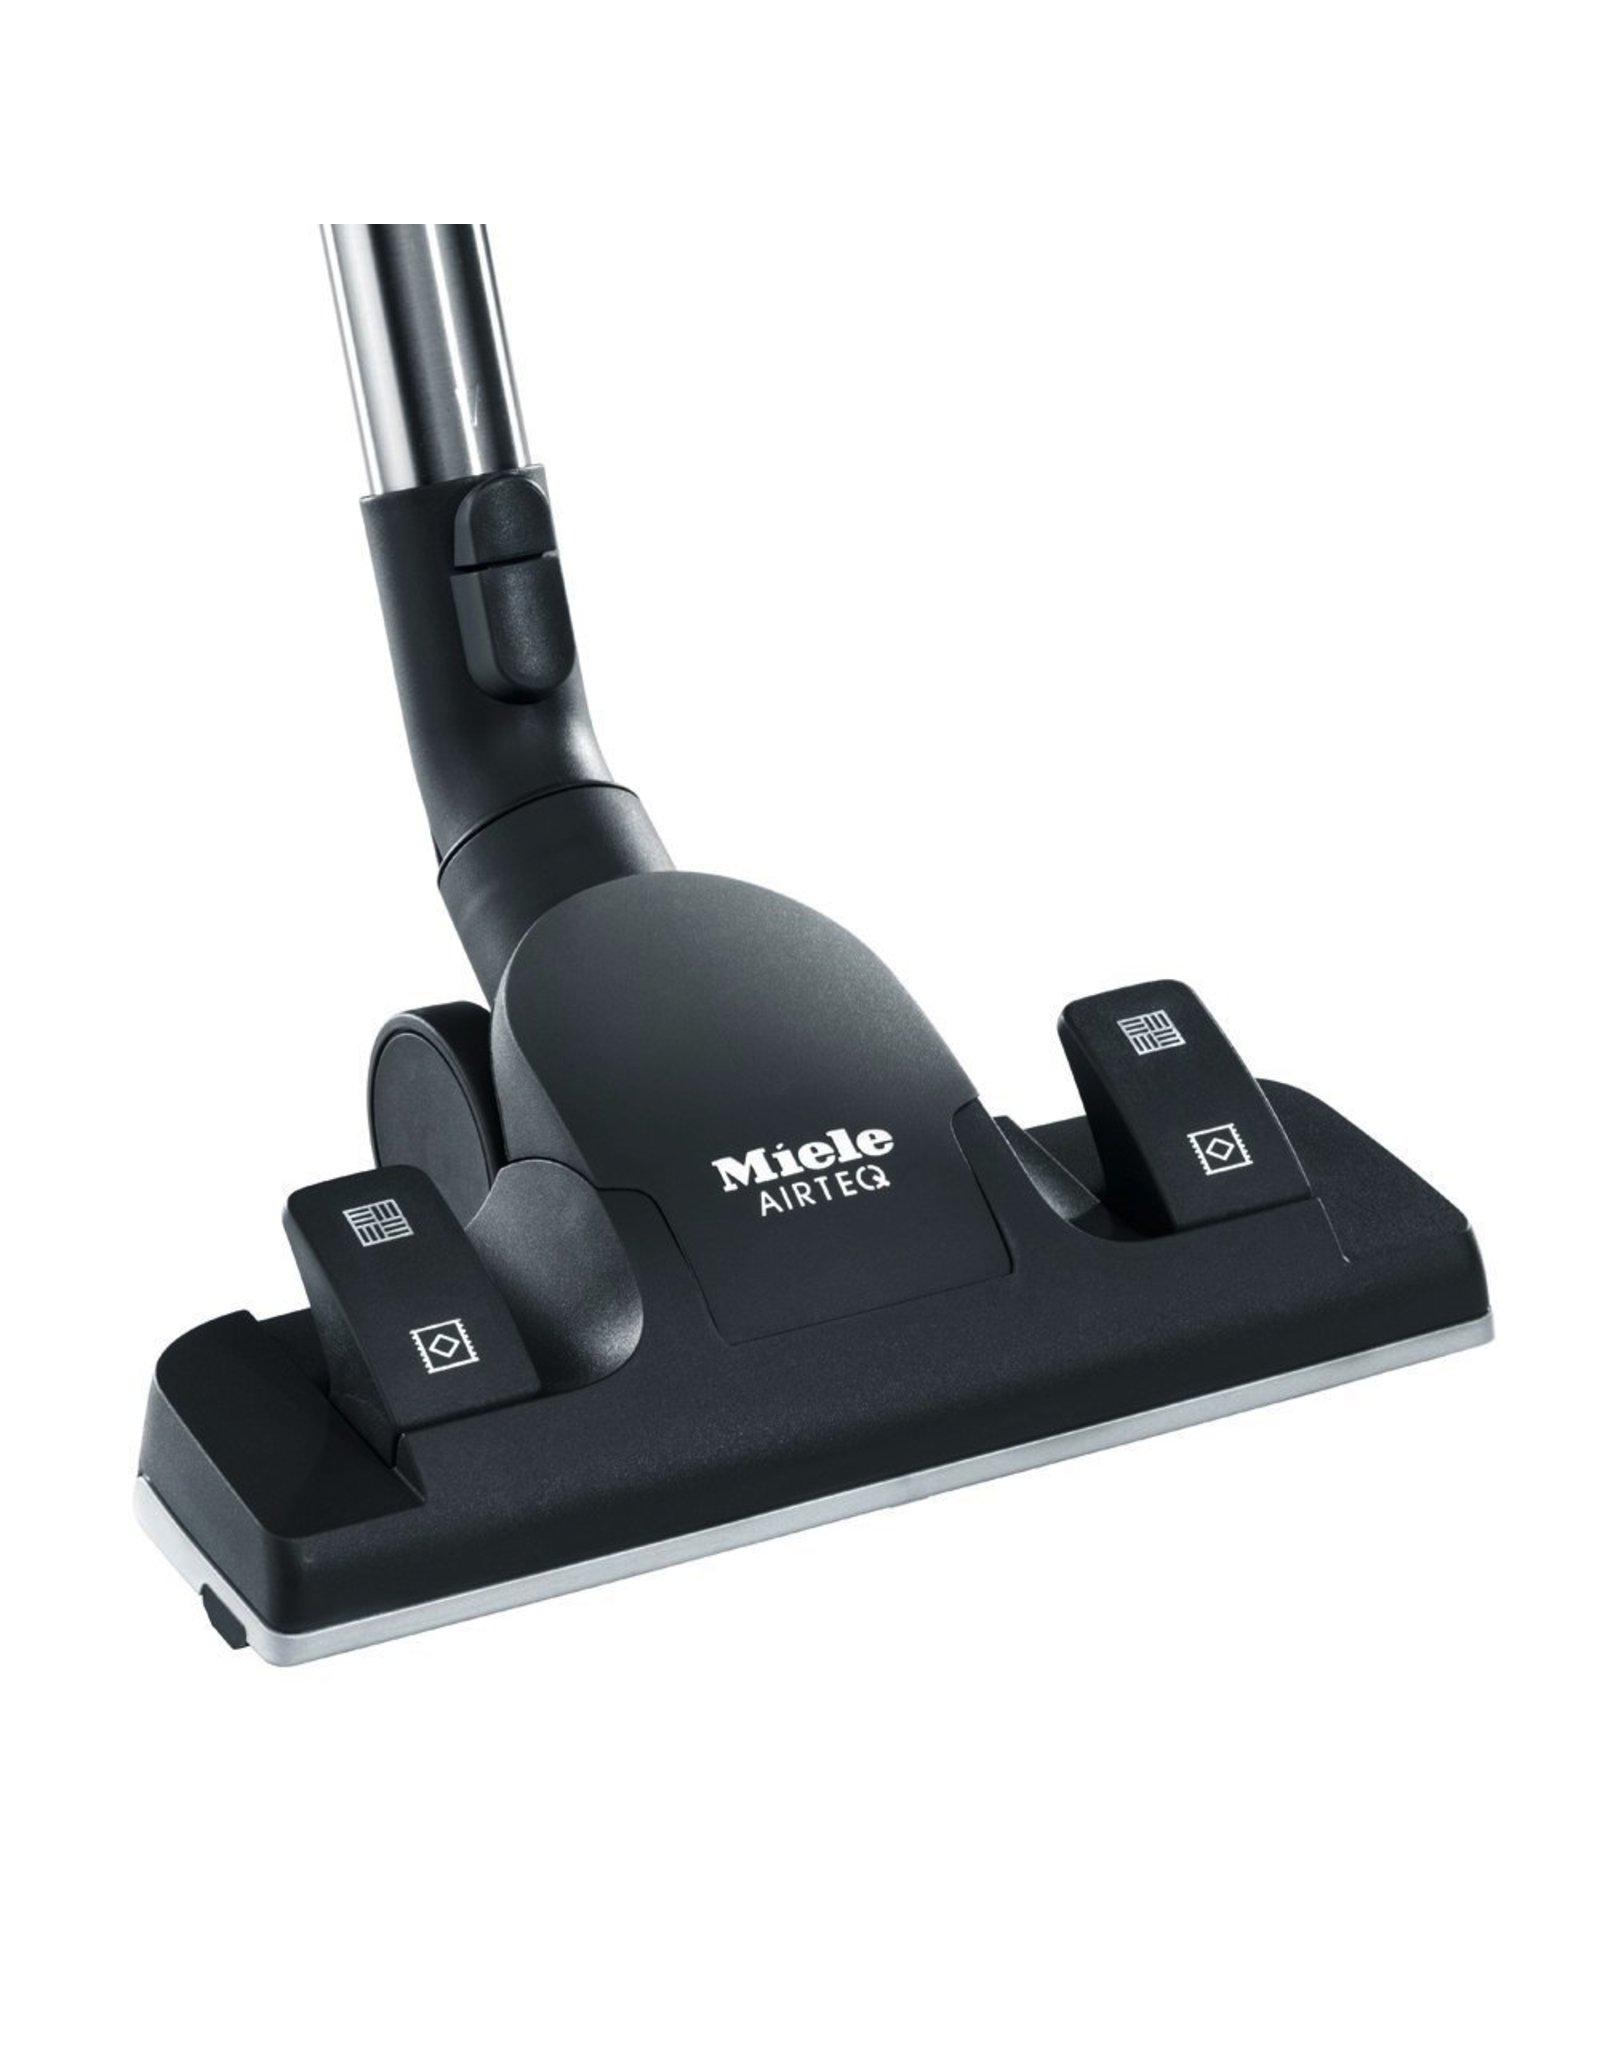 Miele Miele SBD650-3 AirTeq Combination Floor Brush